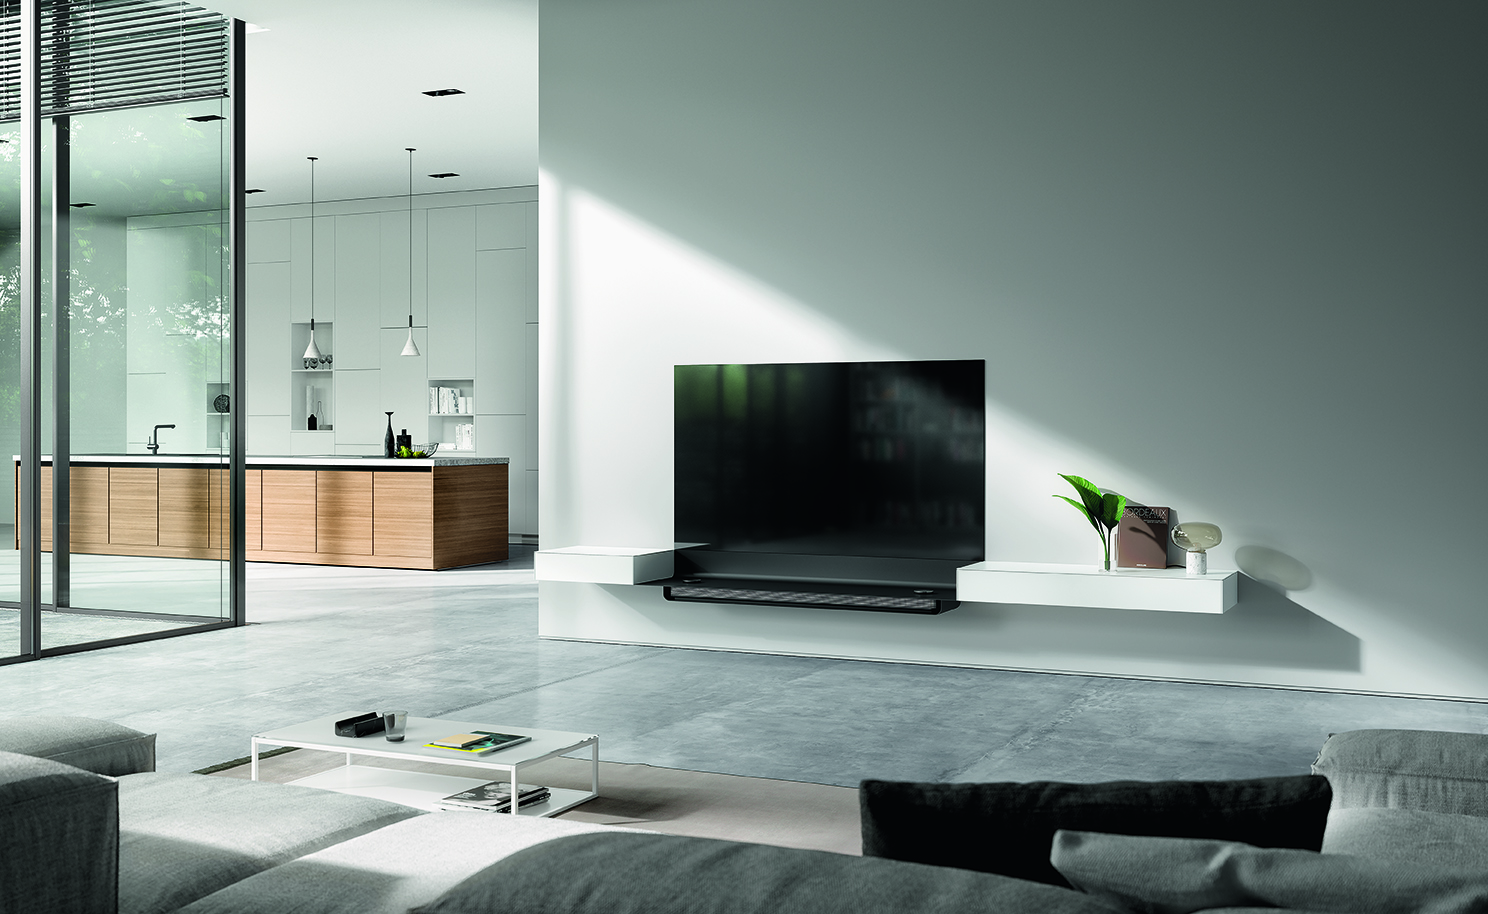 Home Entertainment Von Soundbar Bis Smart Furniture Smartwohnen De